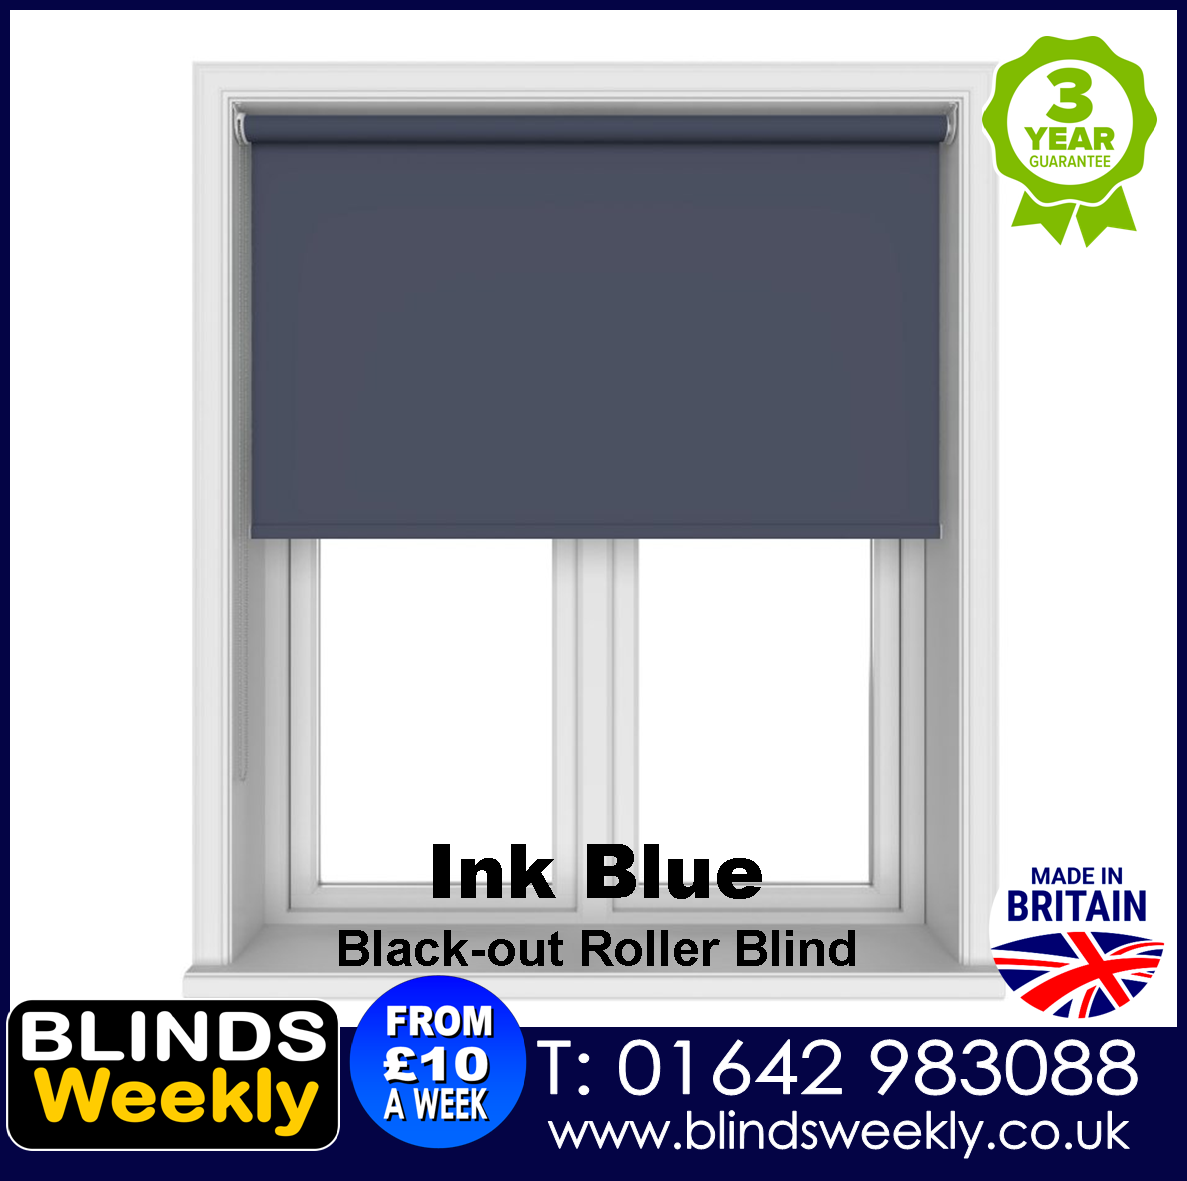 Blinds Weekly Blackout Roller Blind - INK BLUE